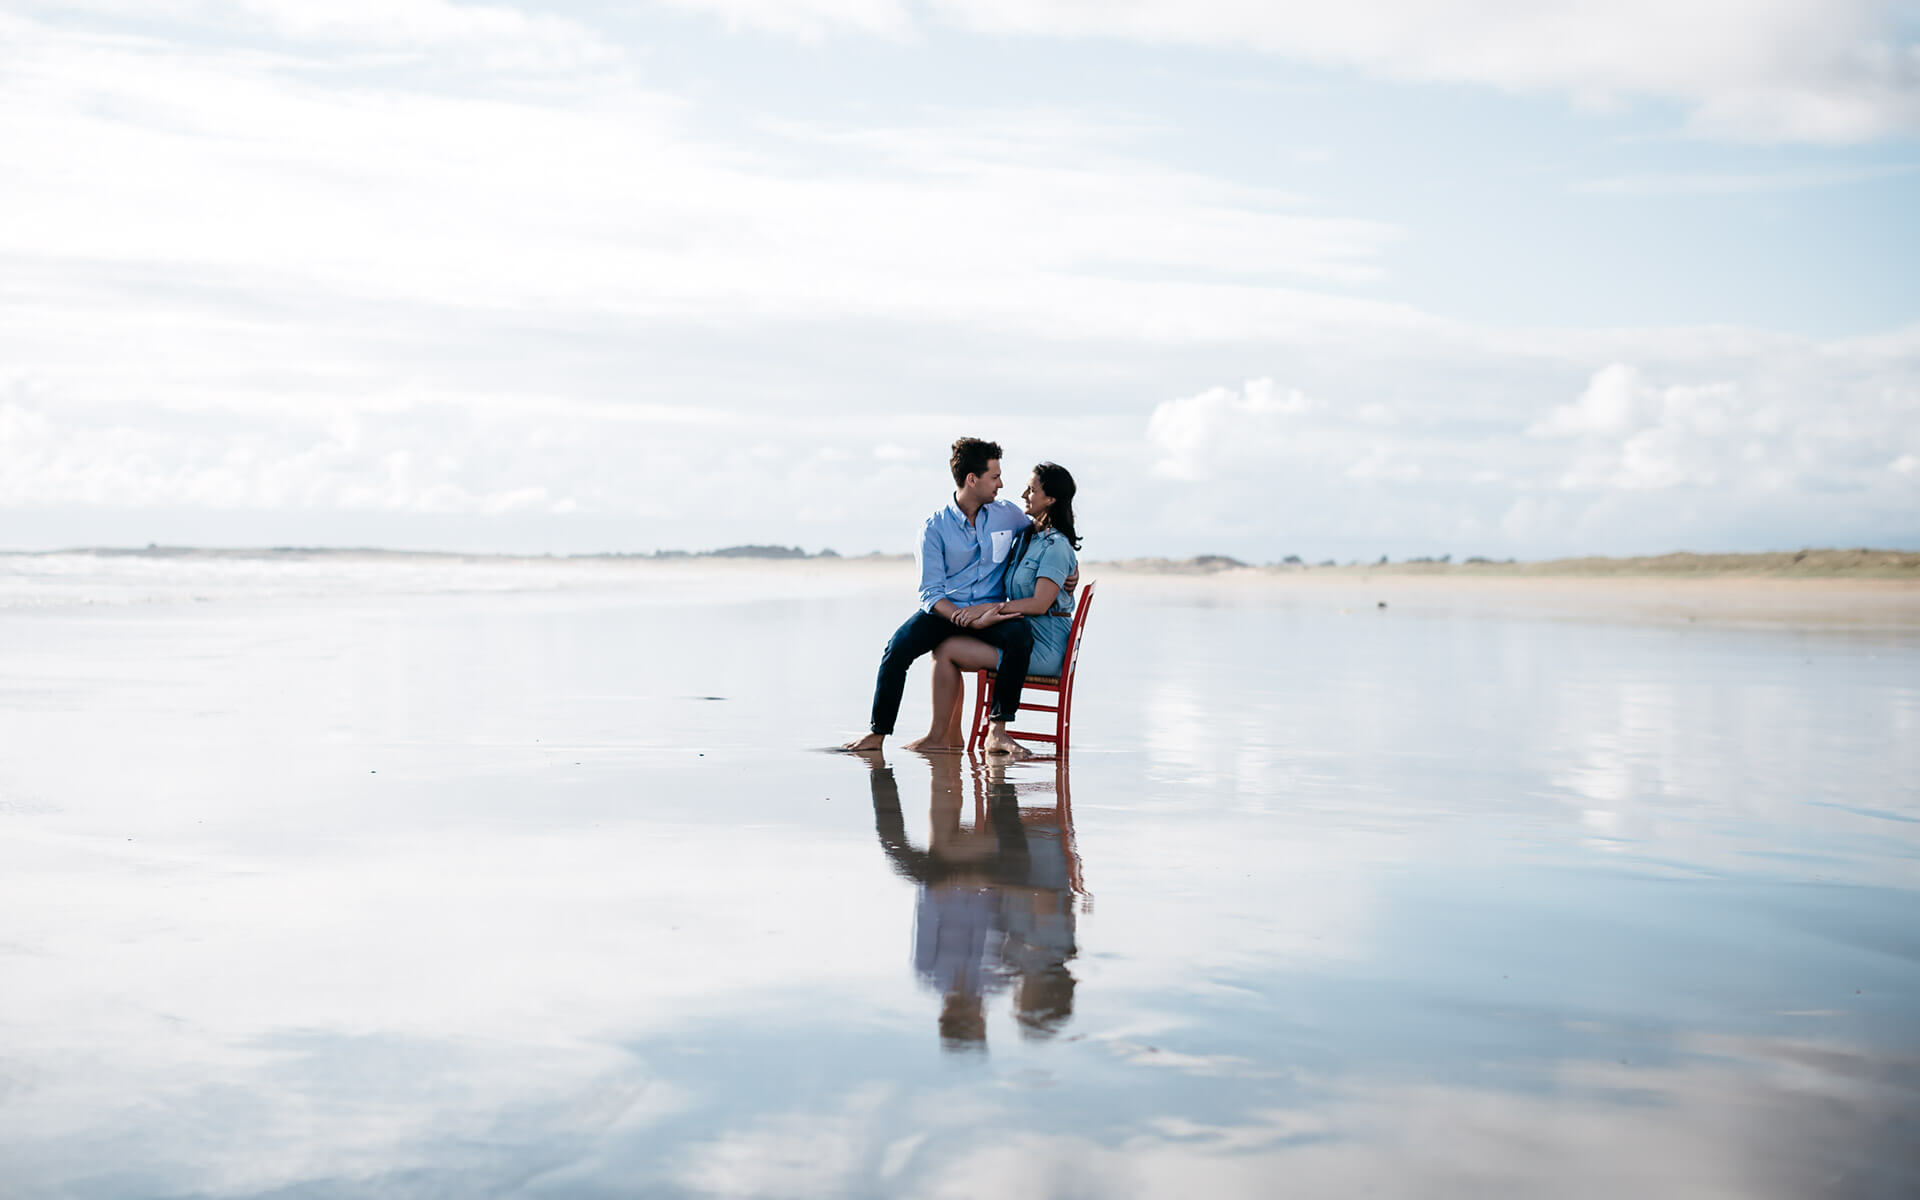 plage sainte barbe, pierre gobled, mariage plouharnel , photographe mariage plouharnel